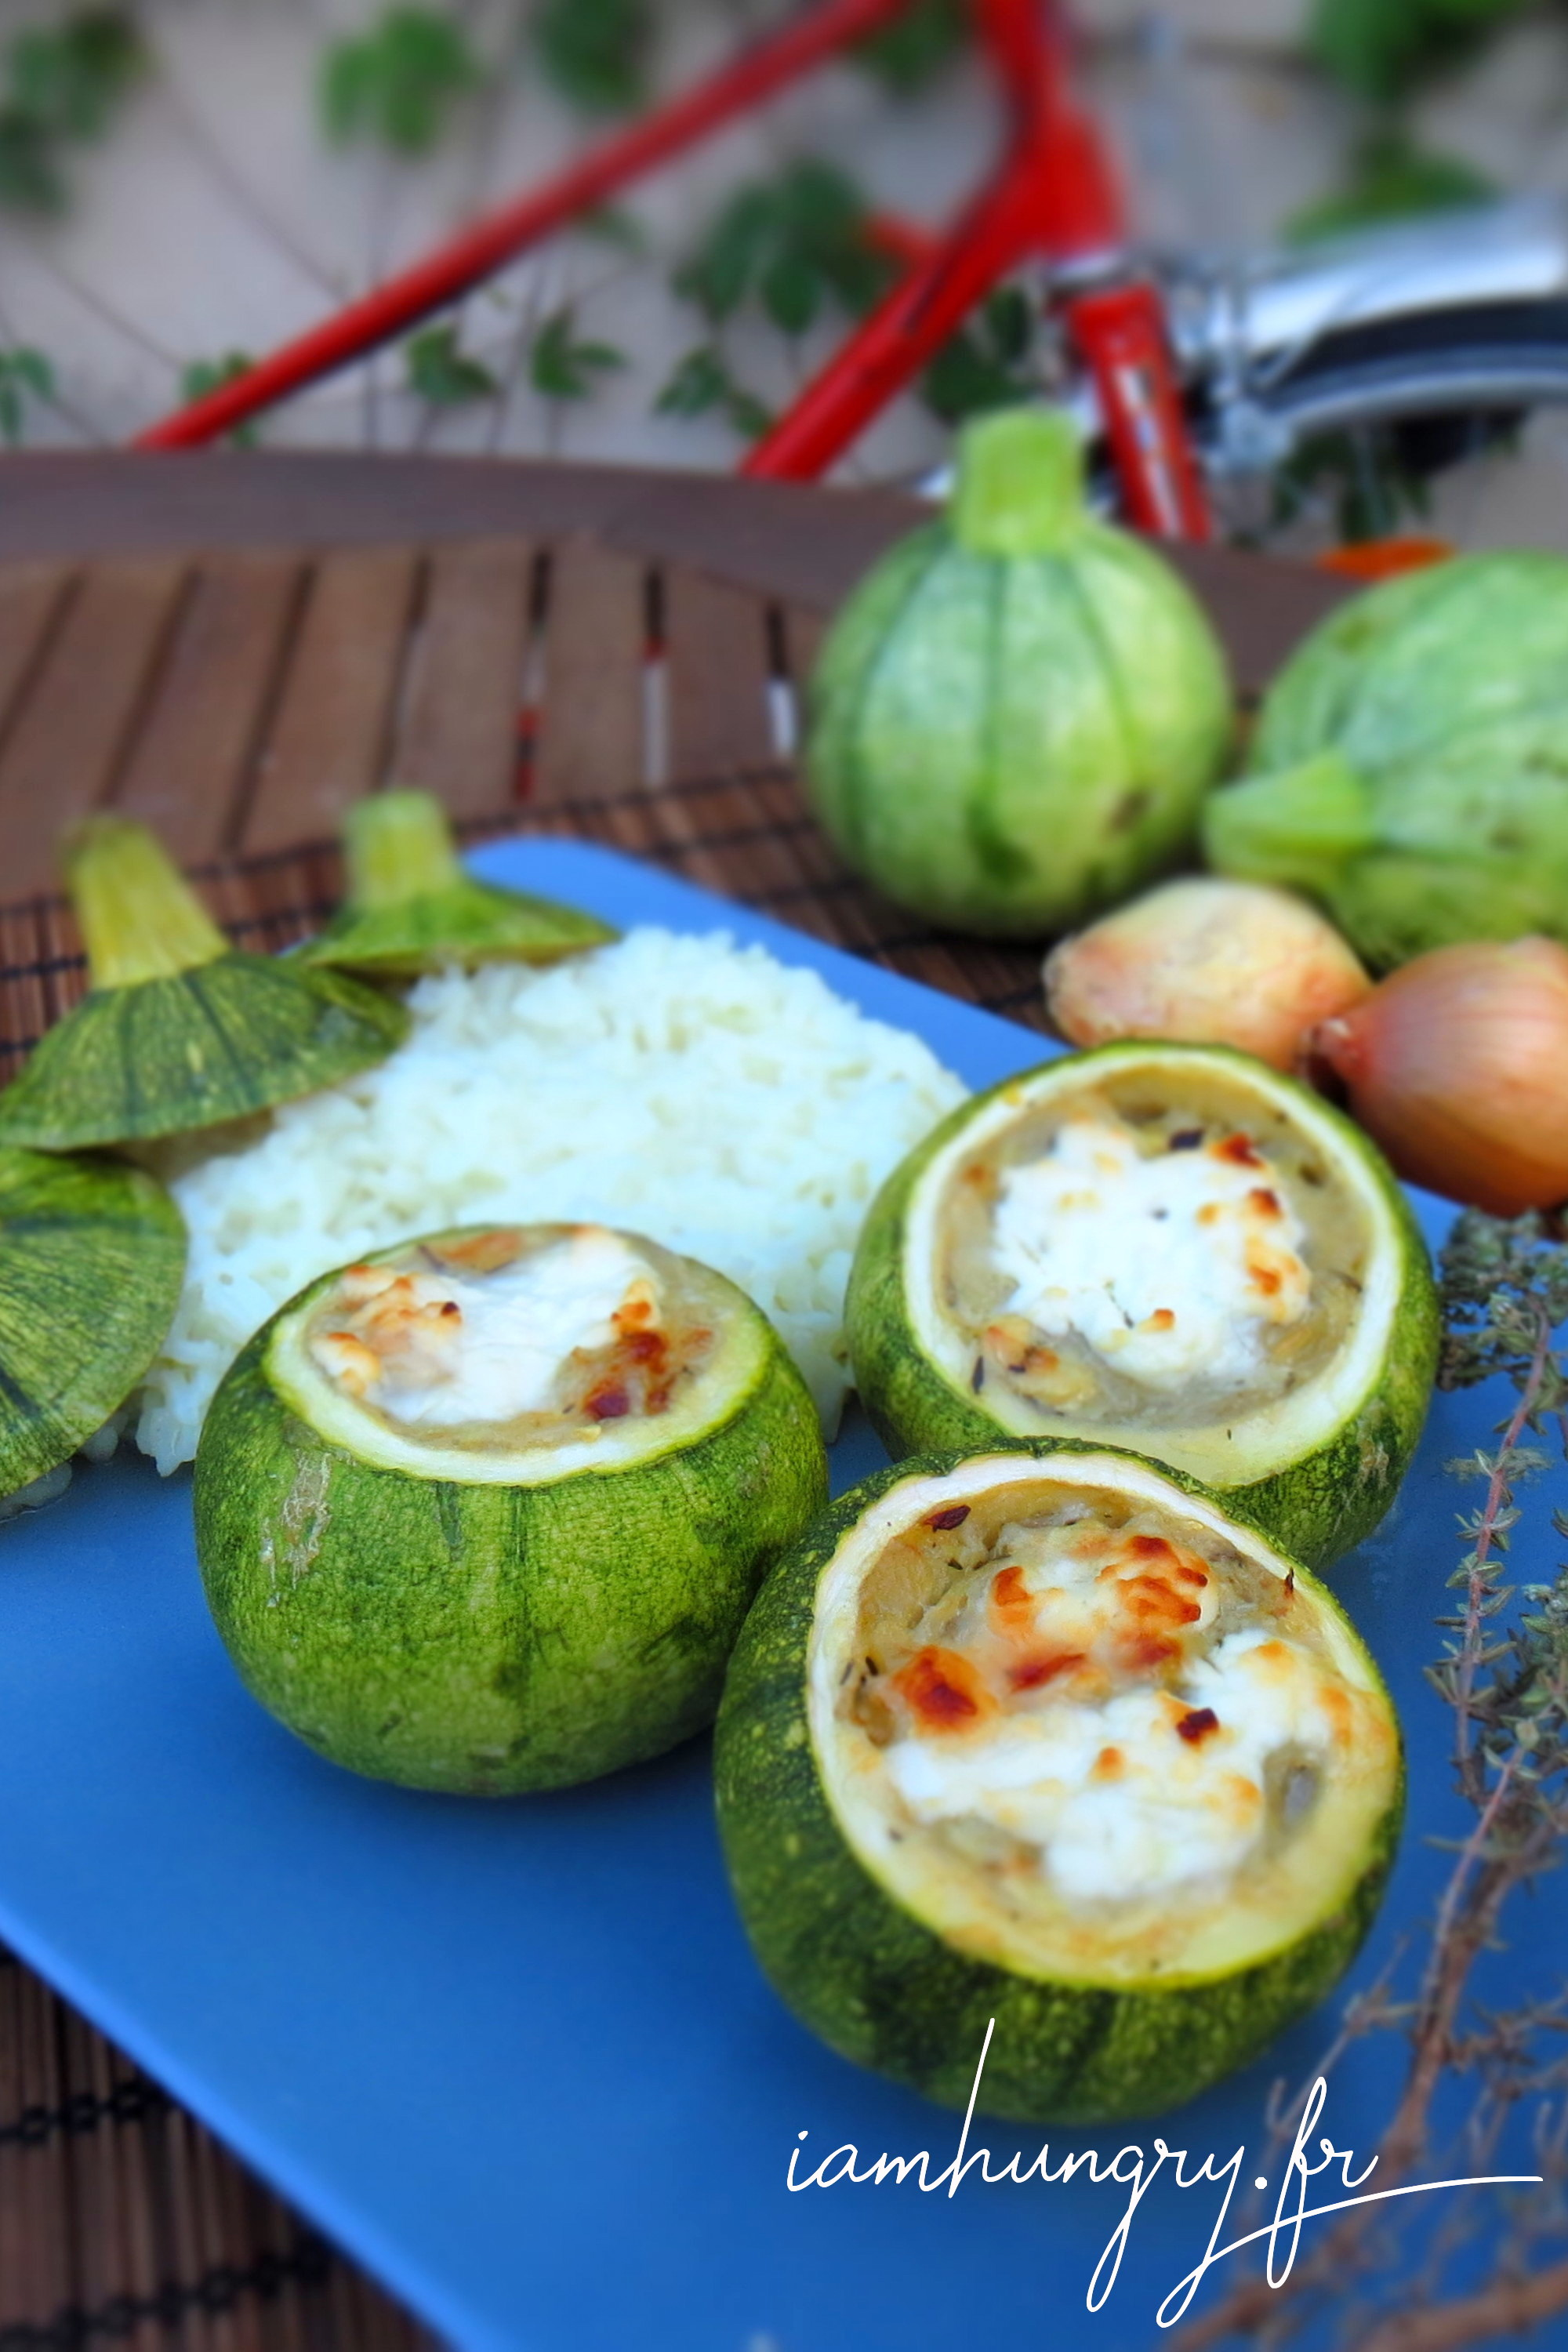 Round zucchini stuffed with onions and goat cheese